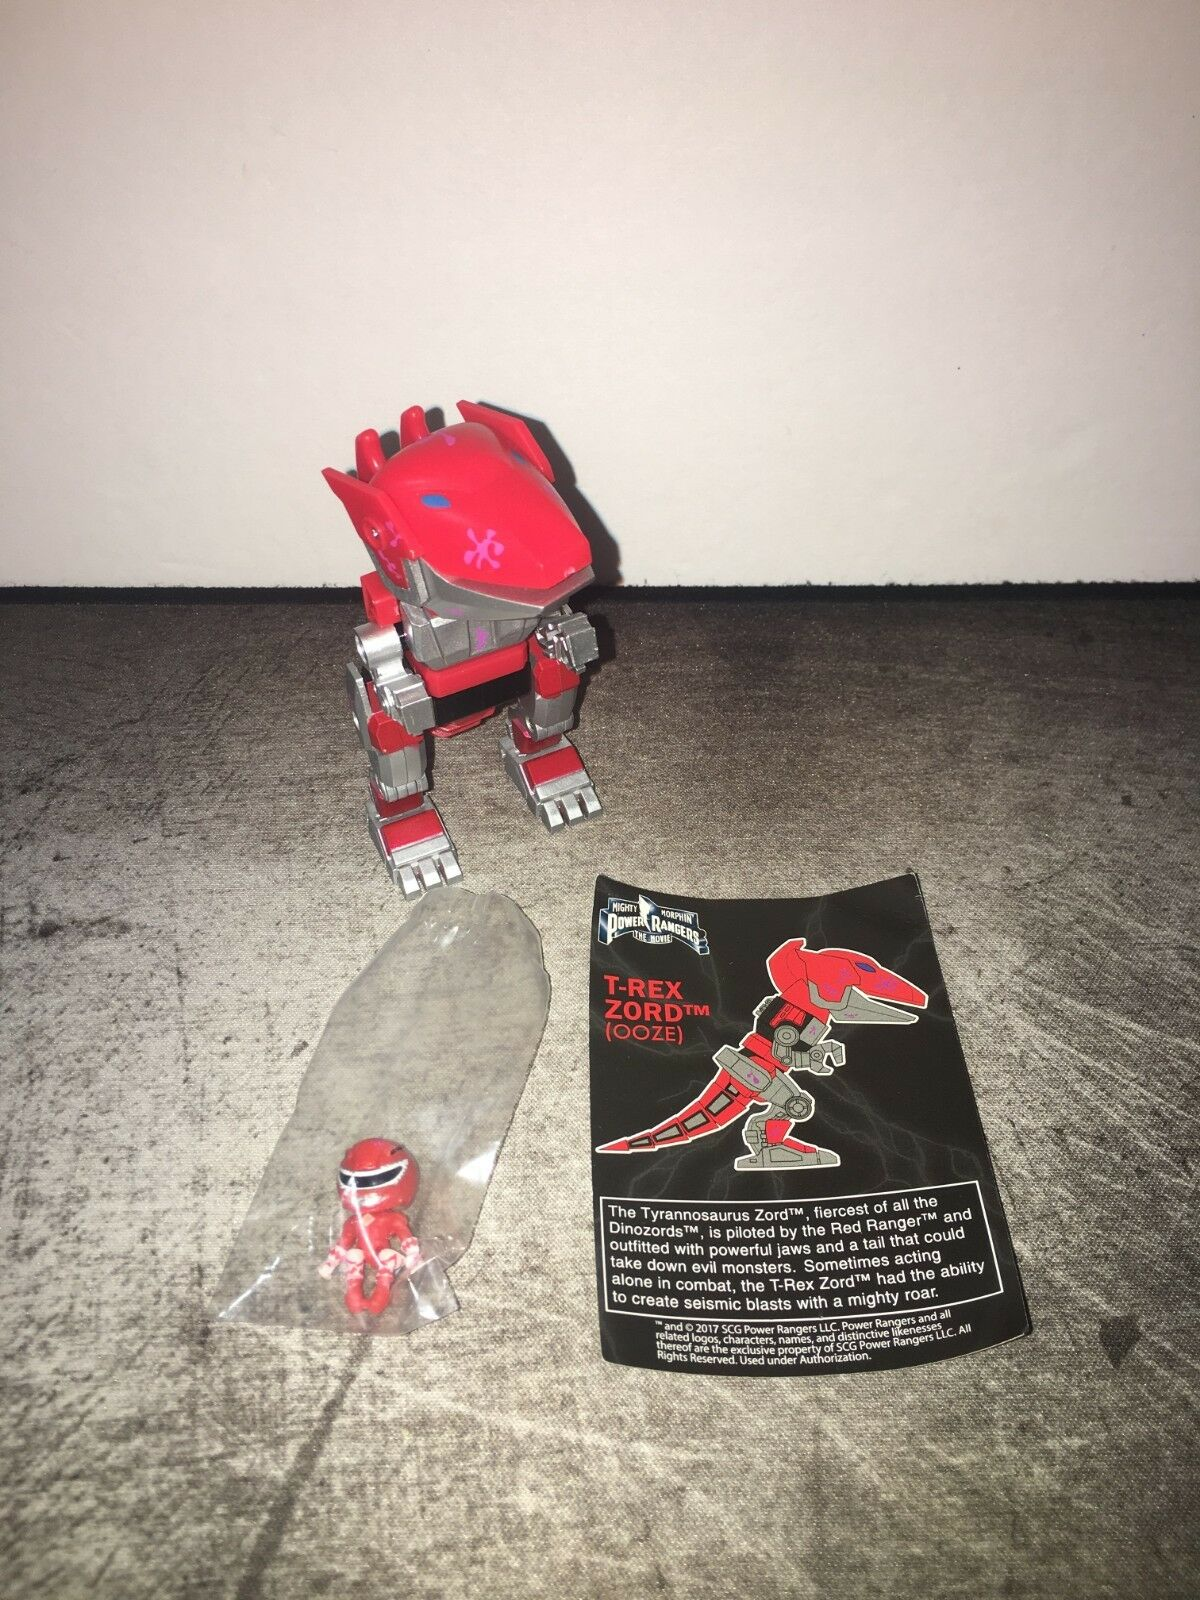 Power Rangers The Movie MMPR Ooze Ooze Ooze T-Rex - Rare The Loyal Subjects d7011f